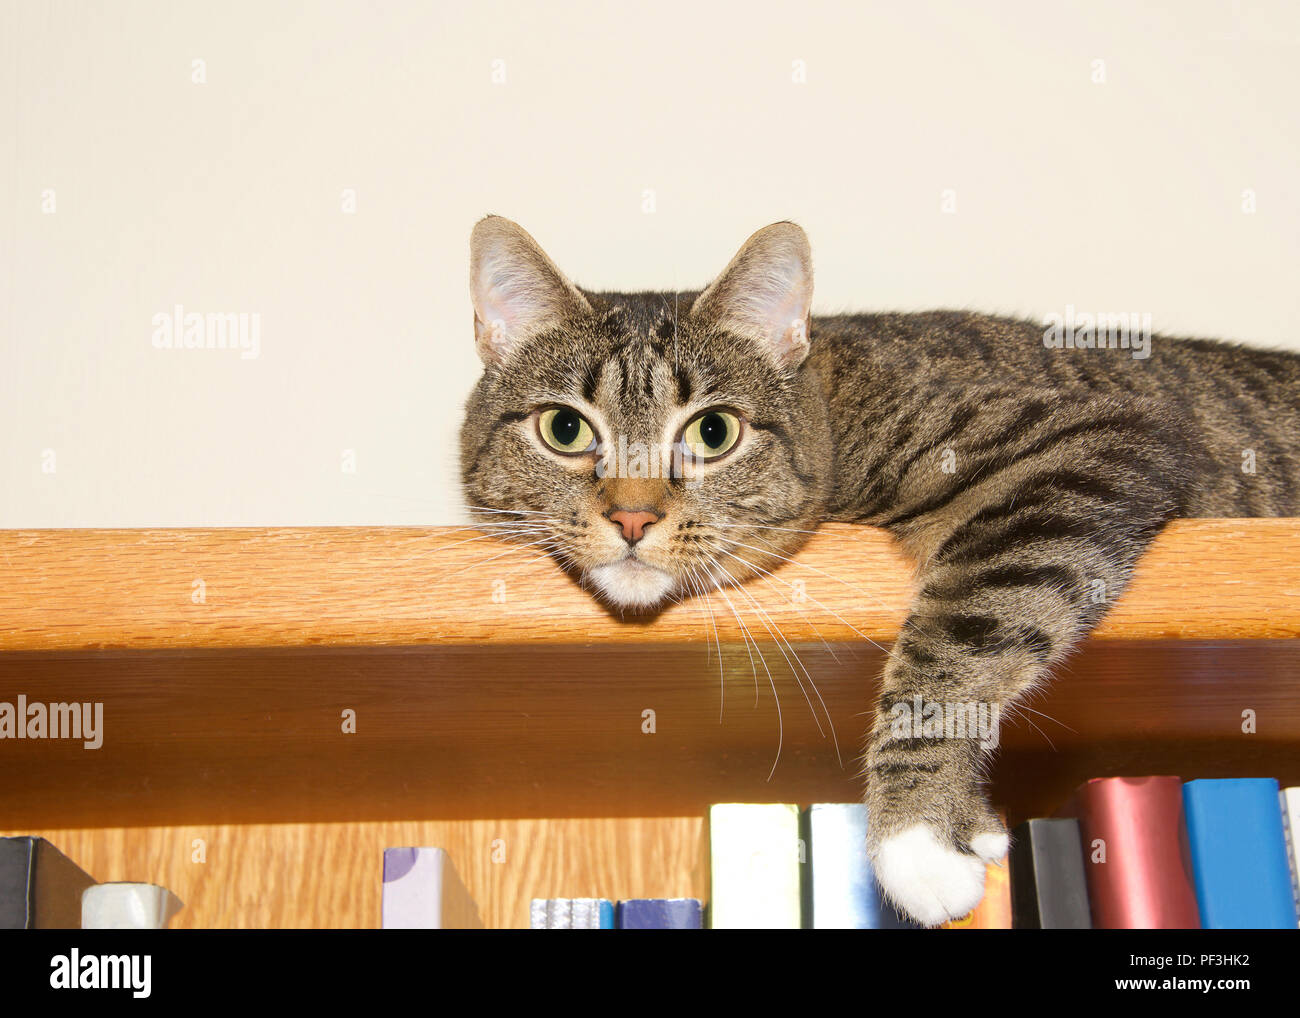 Young Tabby Cat Grey And Tan With White Paws Laying On The Top Of A Bookshelf Looking At Viewer As If Guarding Books Copy Space